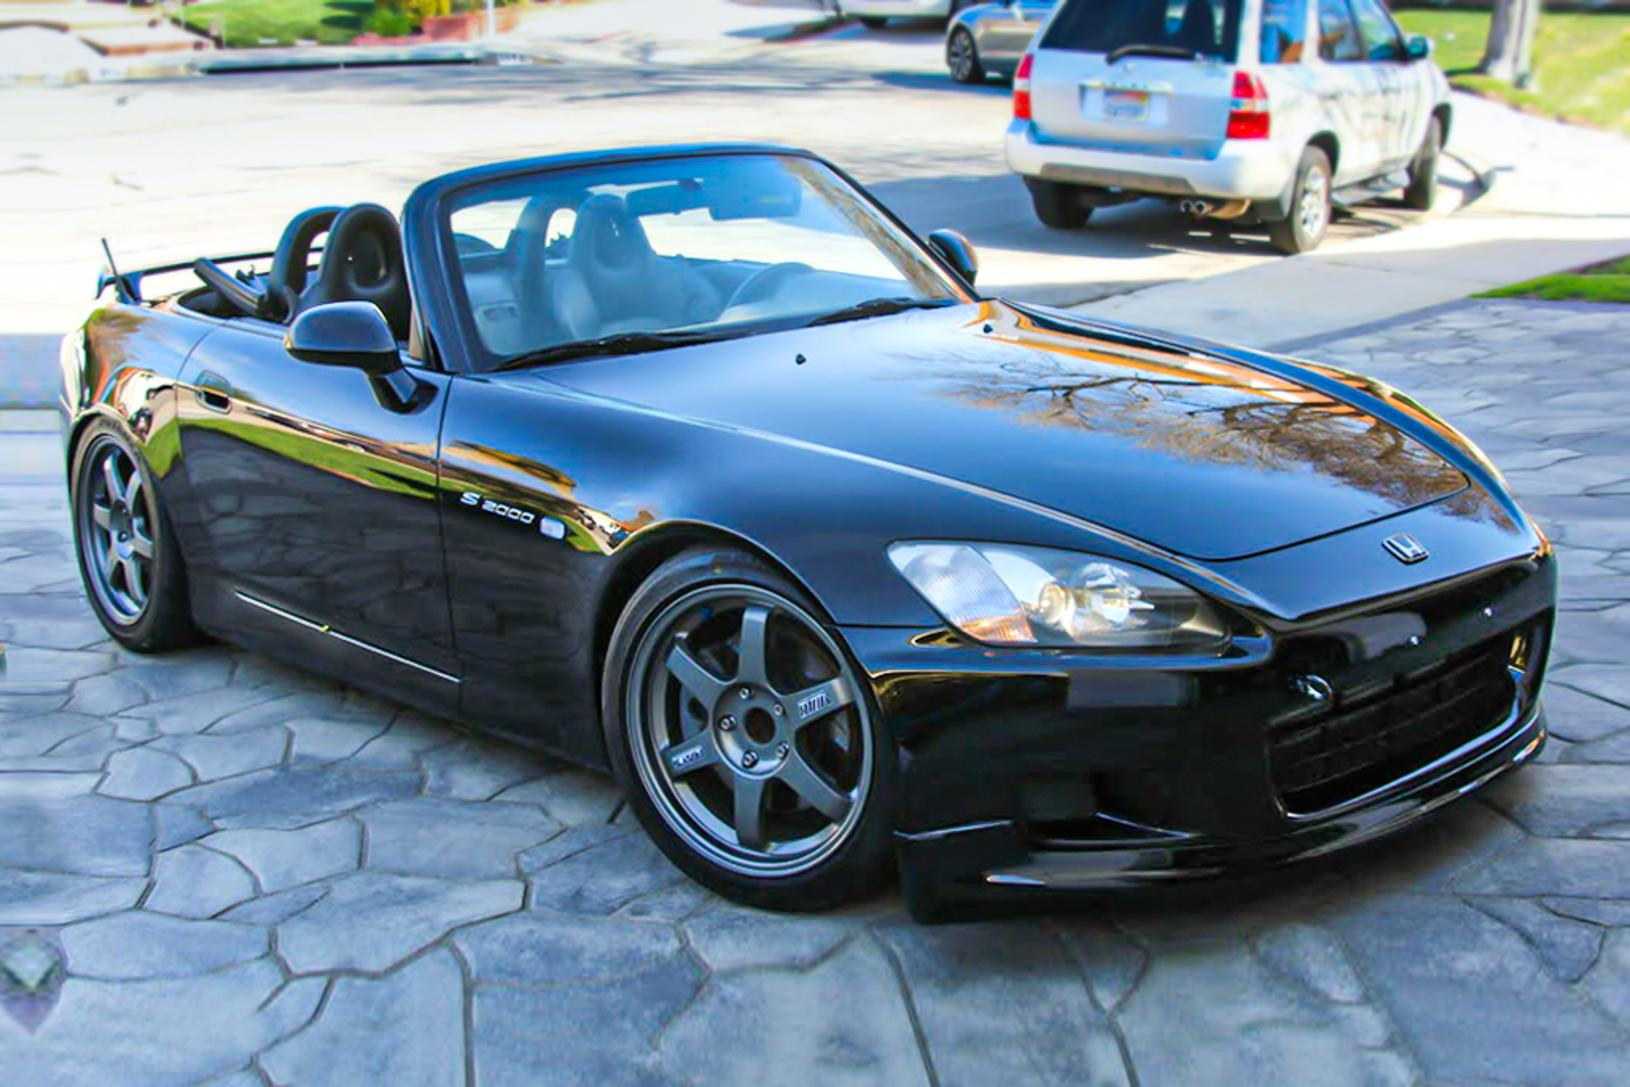 2001 Honda S2000 'Supercharged'